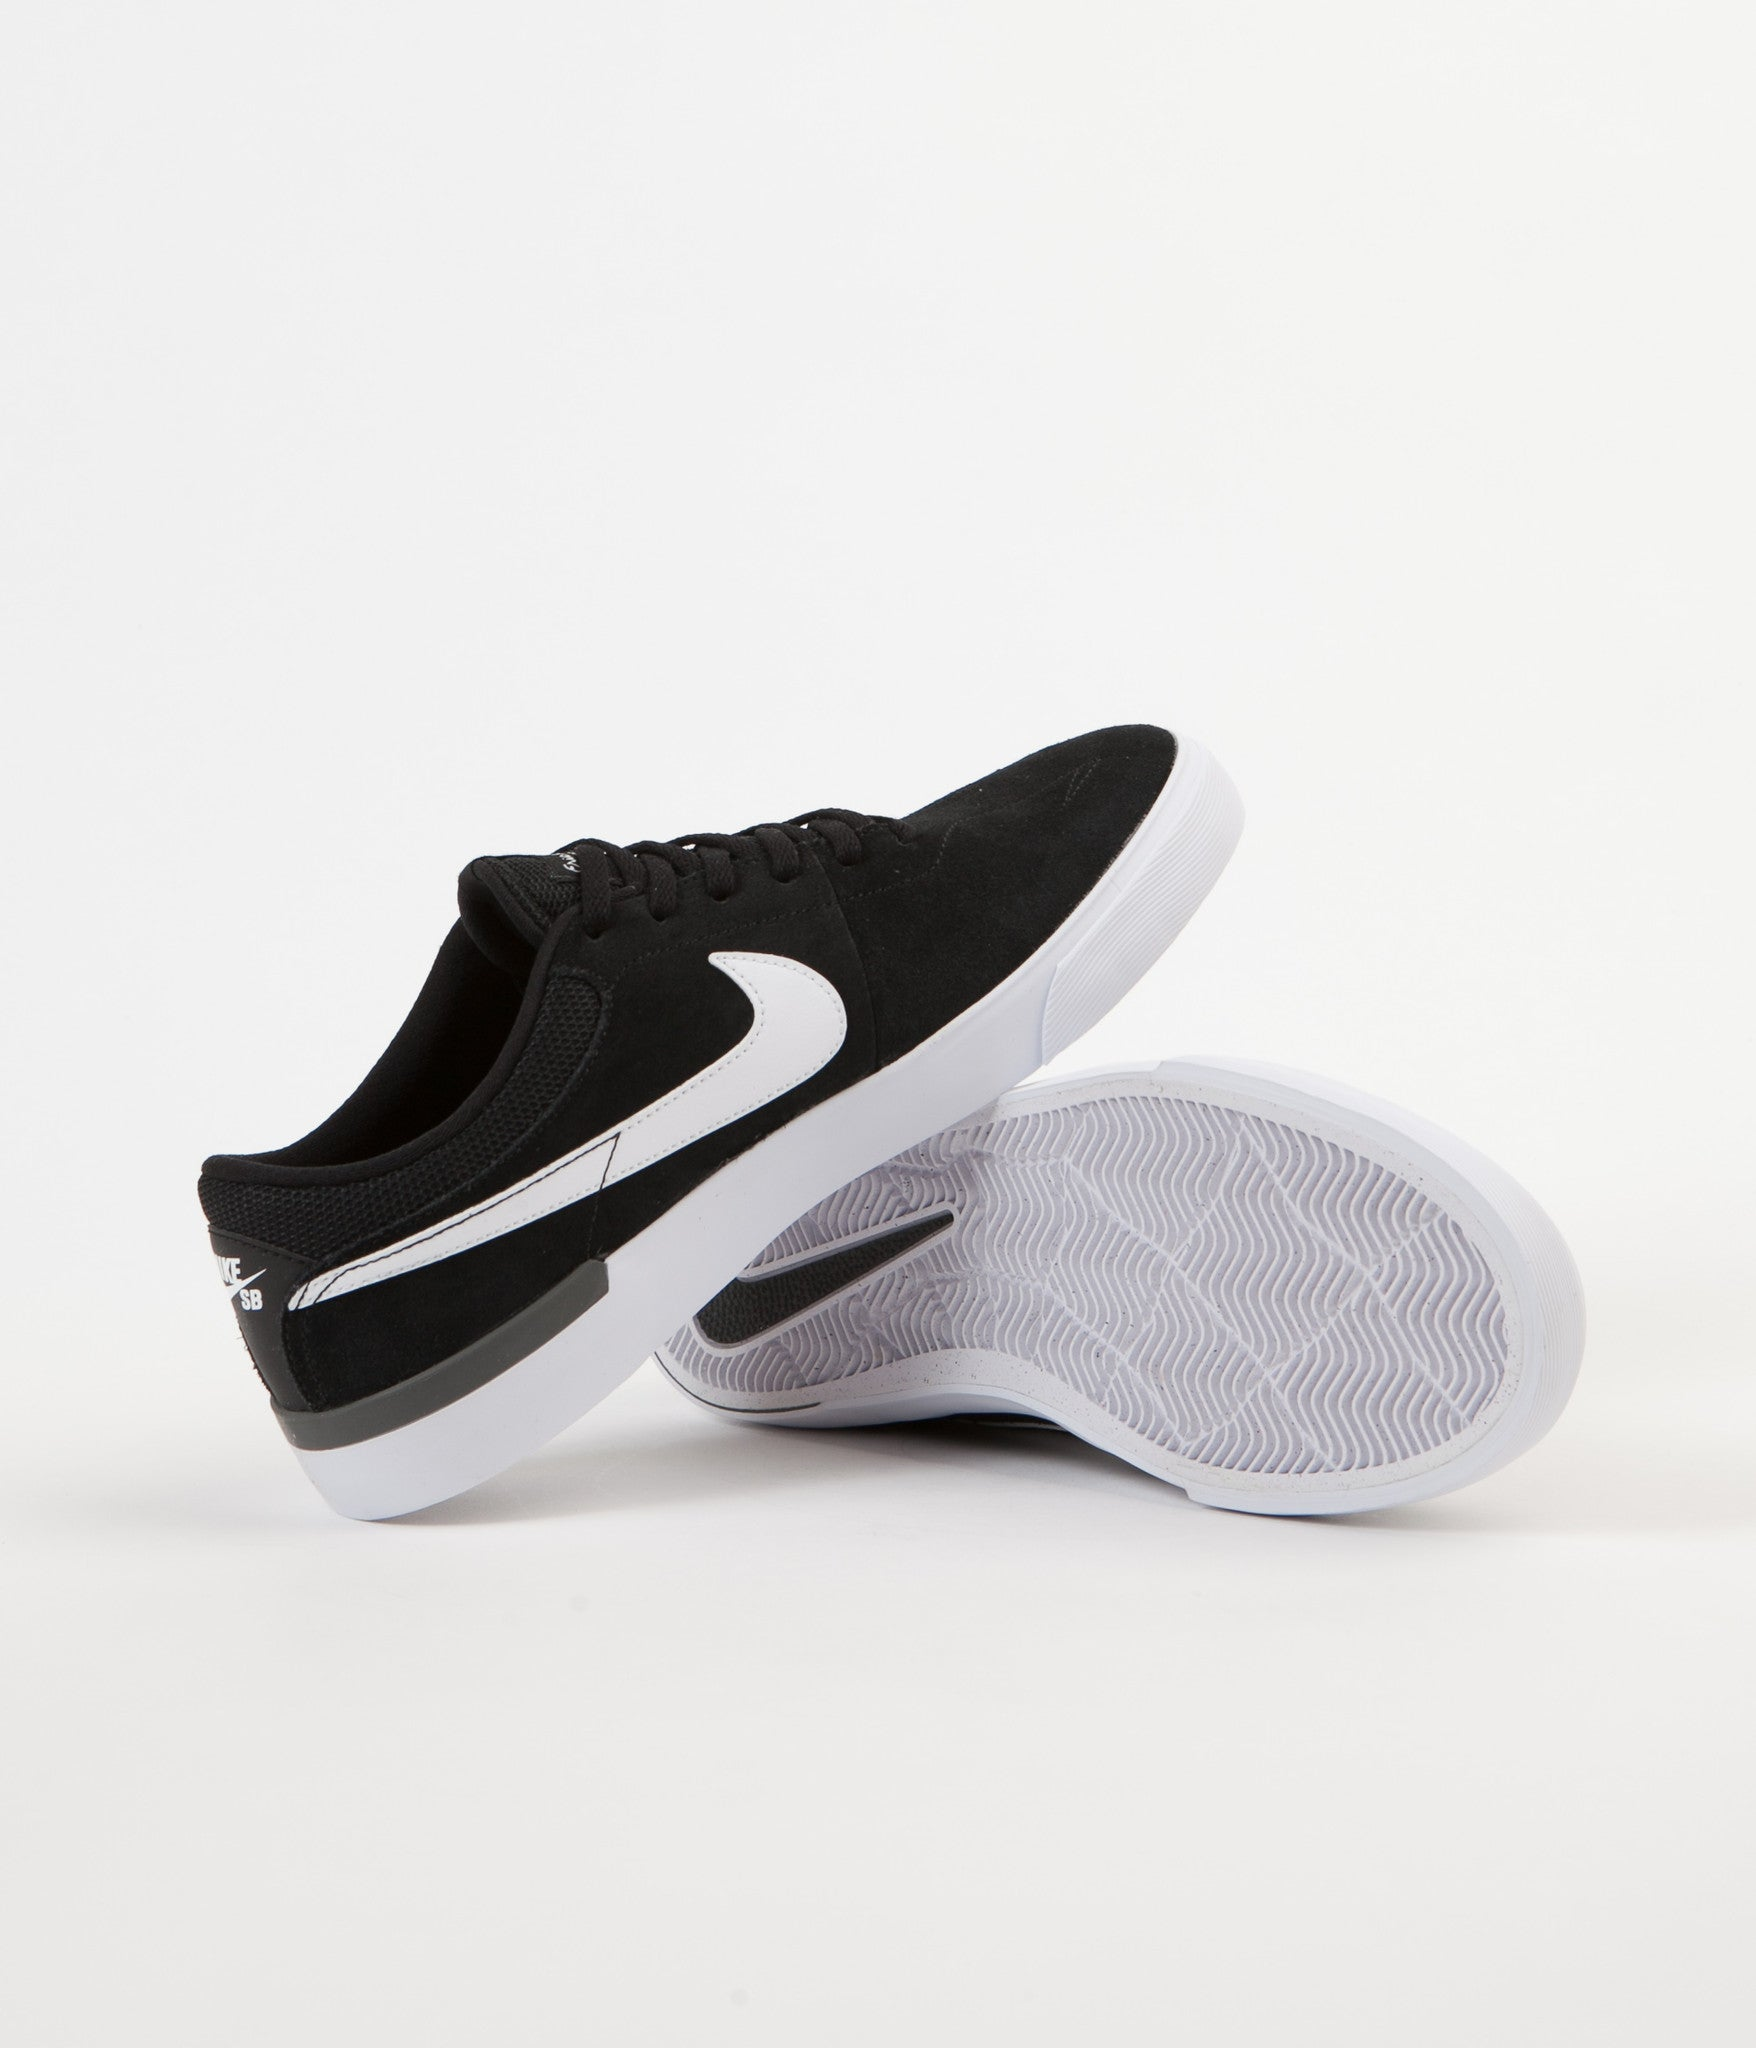 Nike SB Koston Hypervulc Shoes - Black / White - Dark Grey